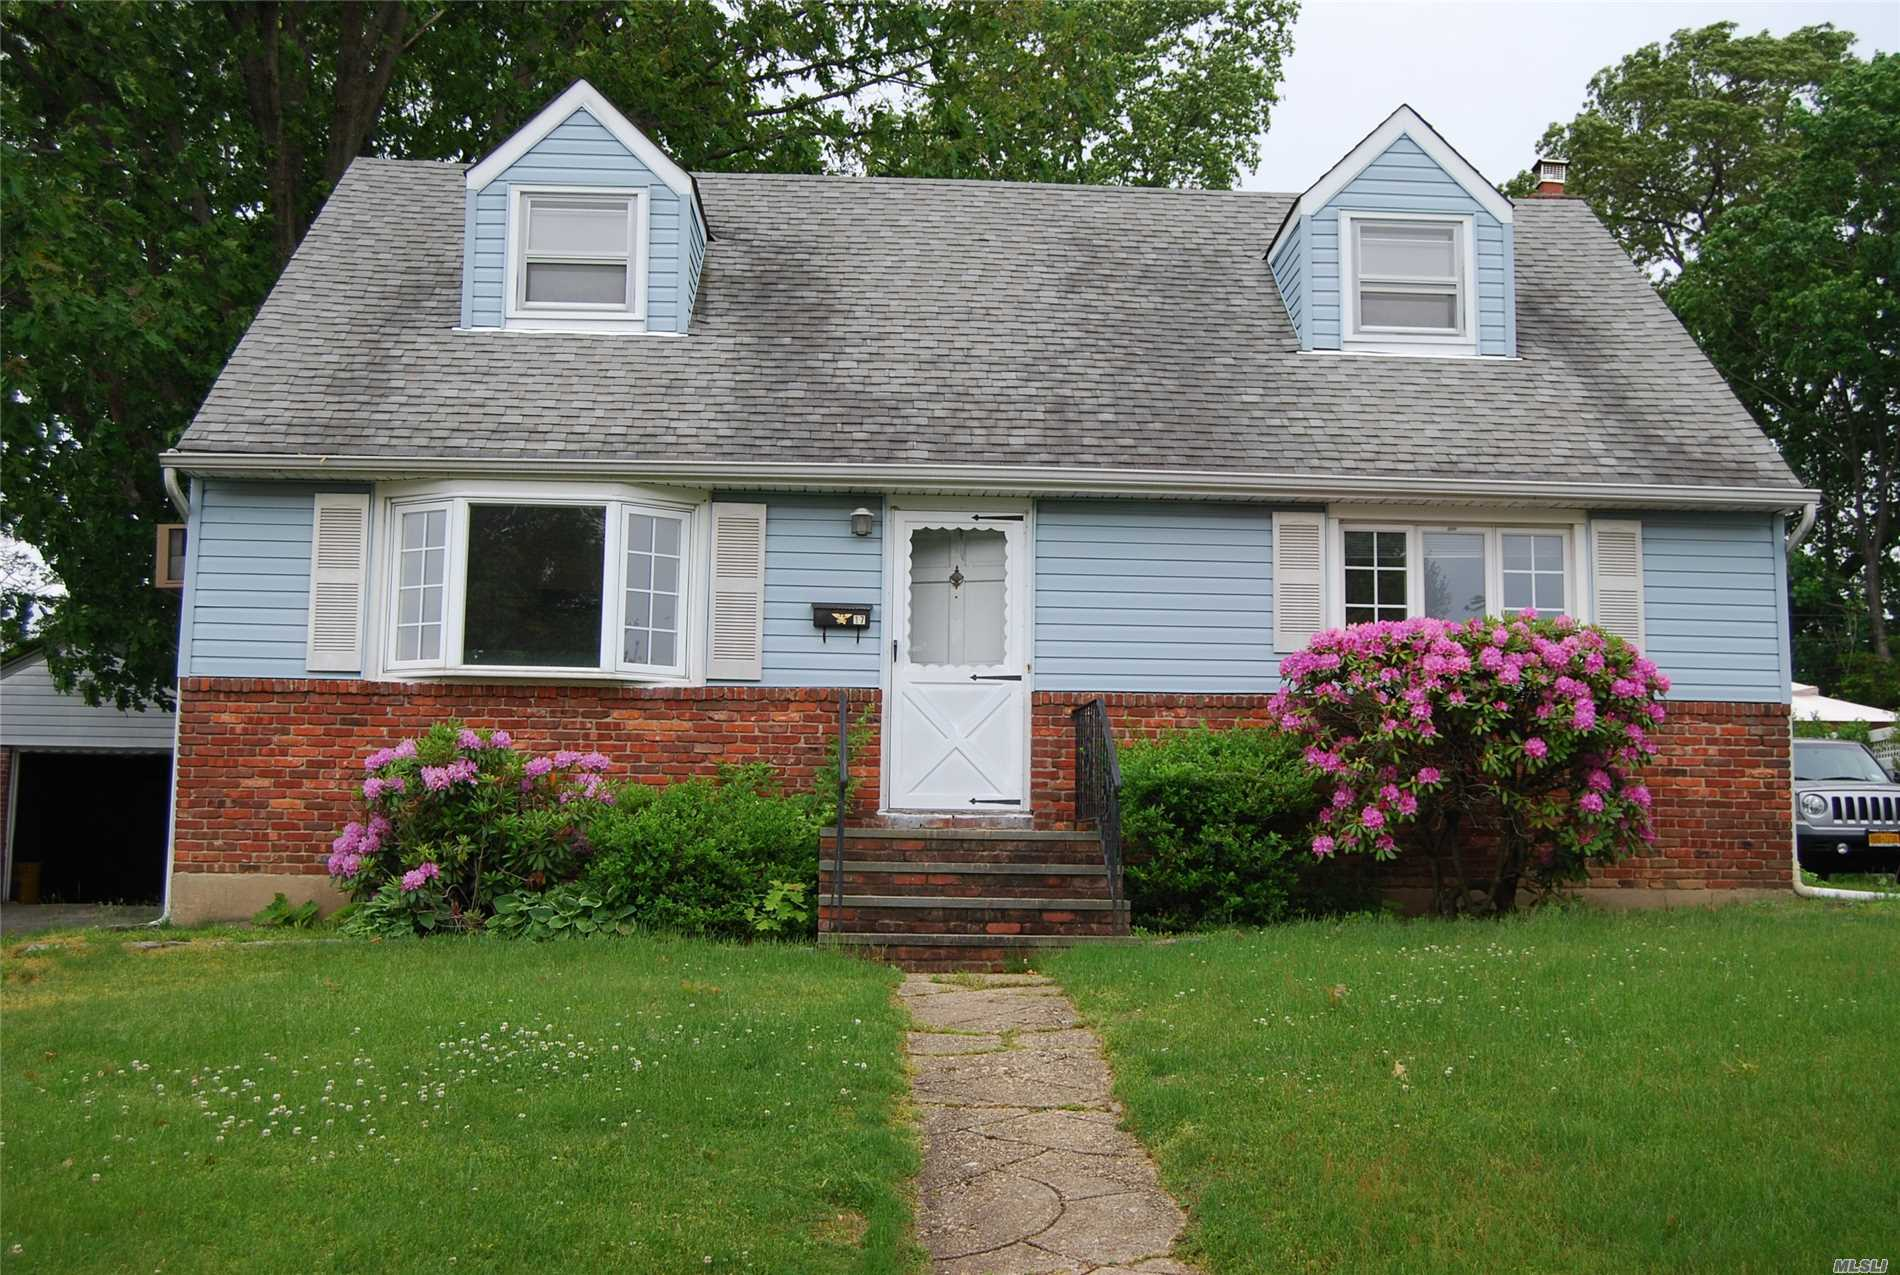 An Expanded Cape with 4 Bedrooms, 2 baths, Kitchen, Living Room, Dining Room, wood Floors, full basement, 1 car garage and private backyard.